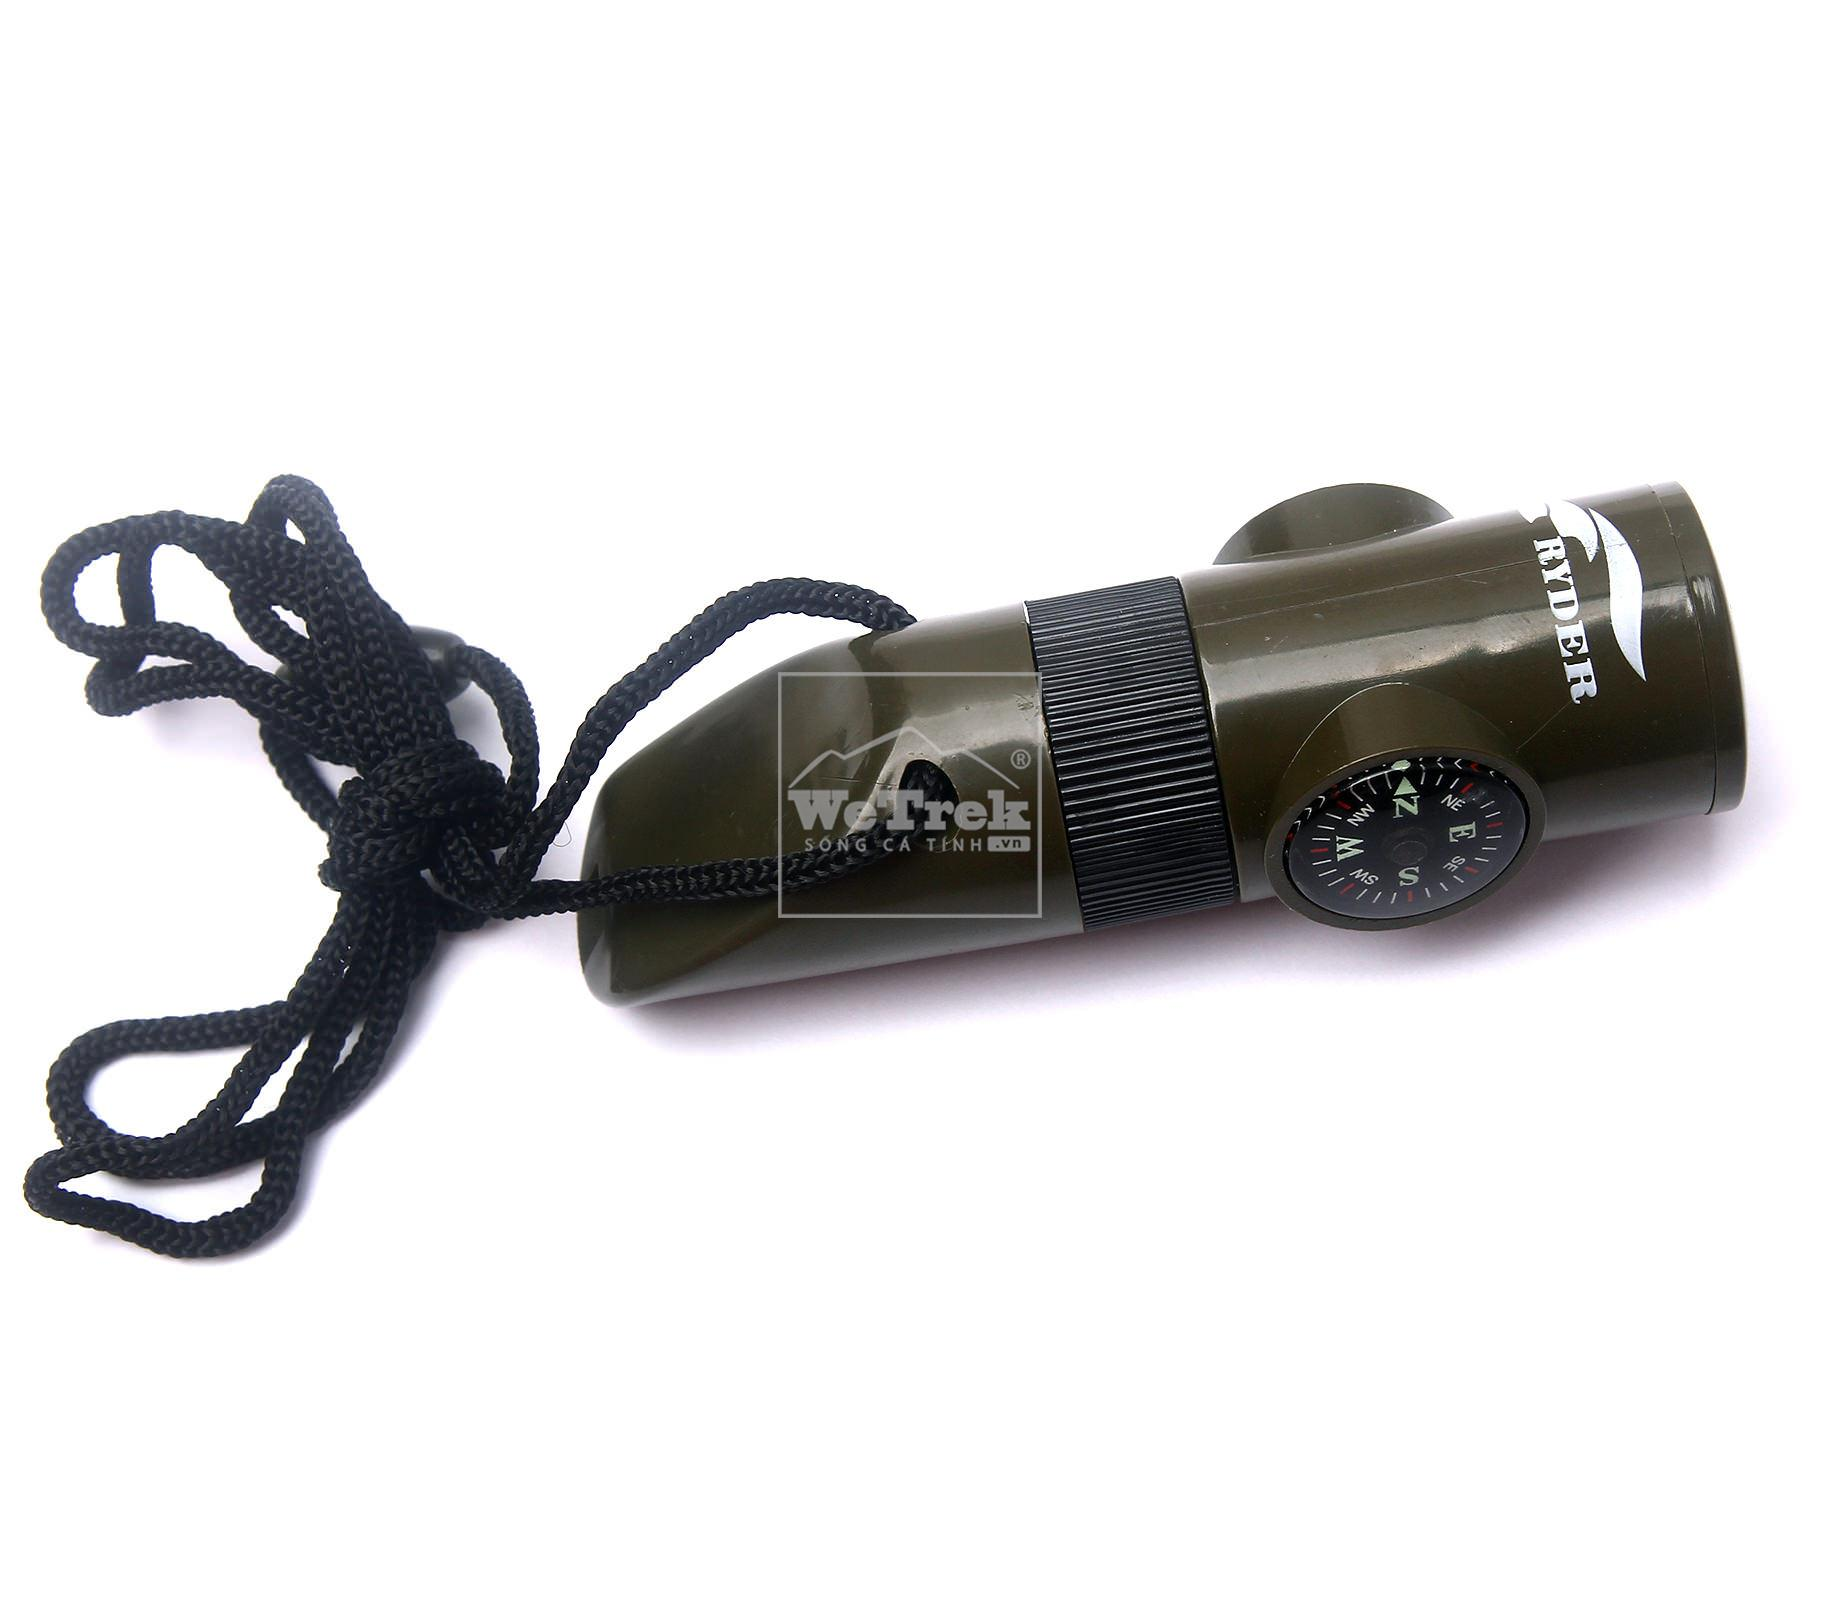 Coi-cuu-ho-da-nang-7in1-Ryder-Emergency-Whistle-L0005-6729_HasThumb.JPG